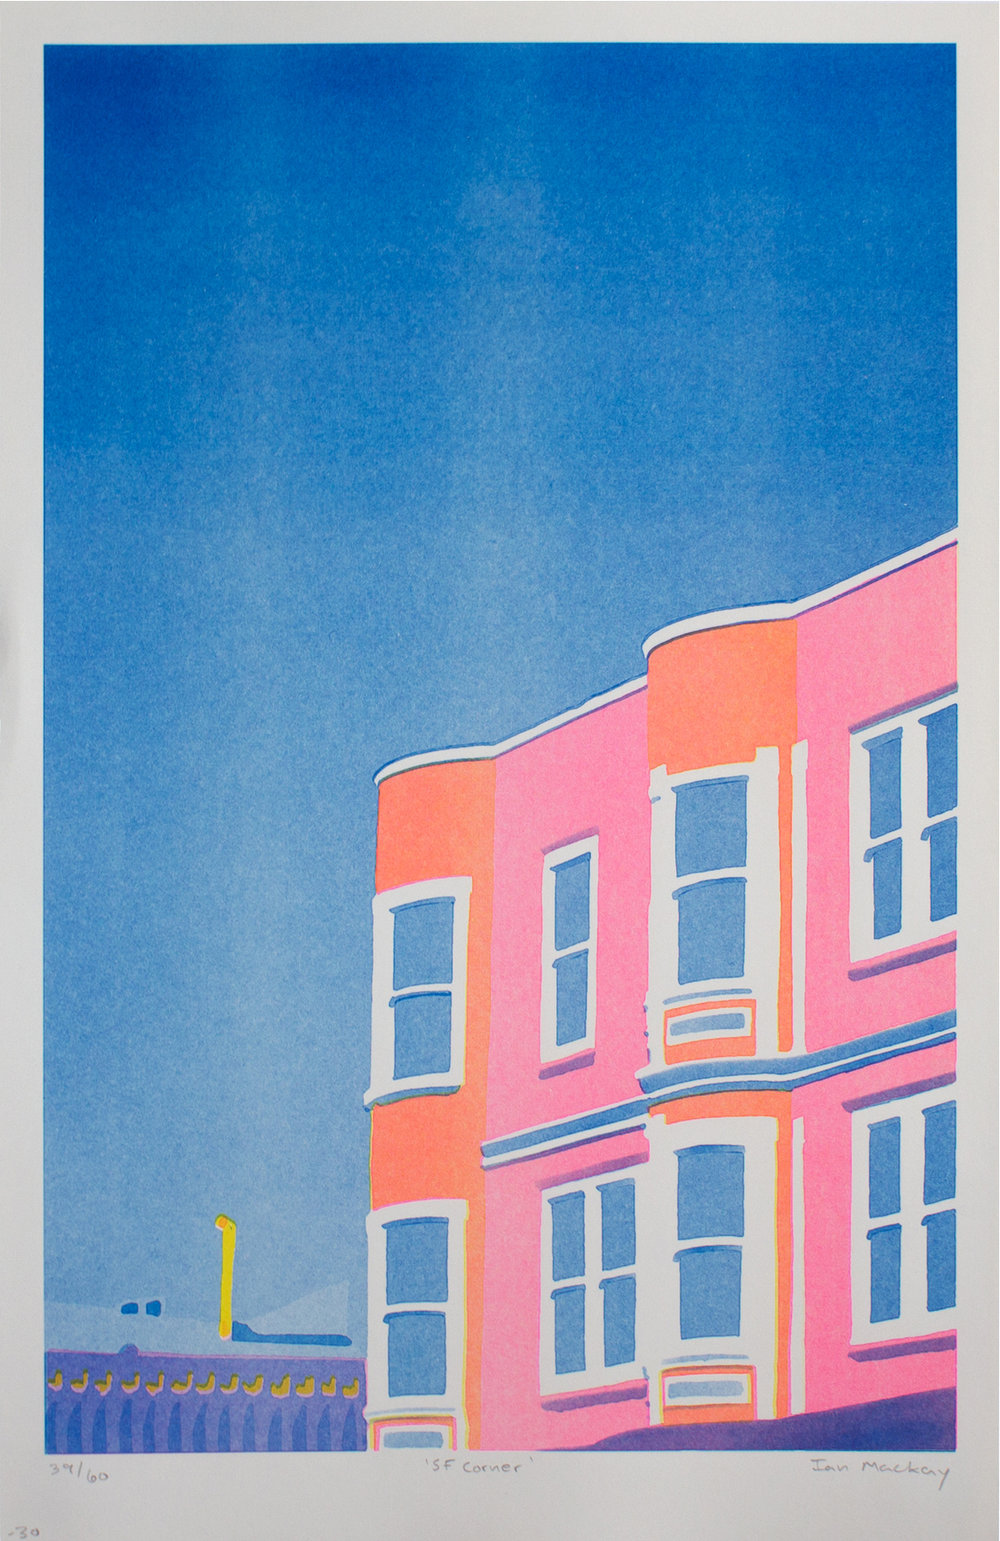 Riso print photos_SF corner_1.jpg